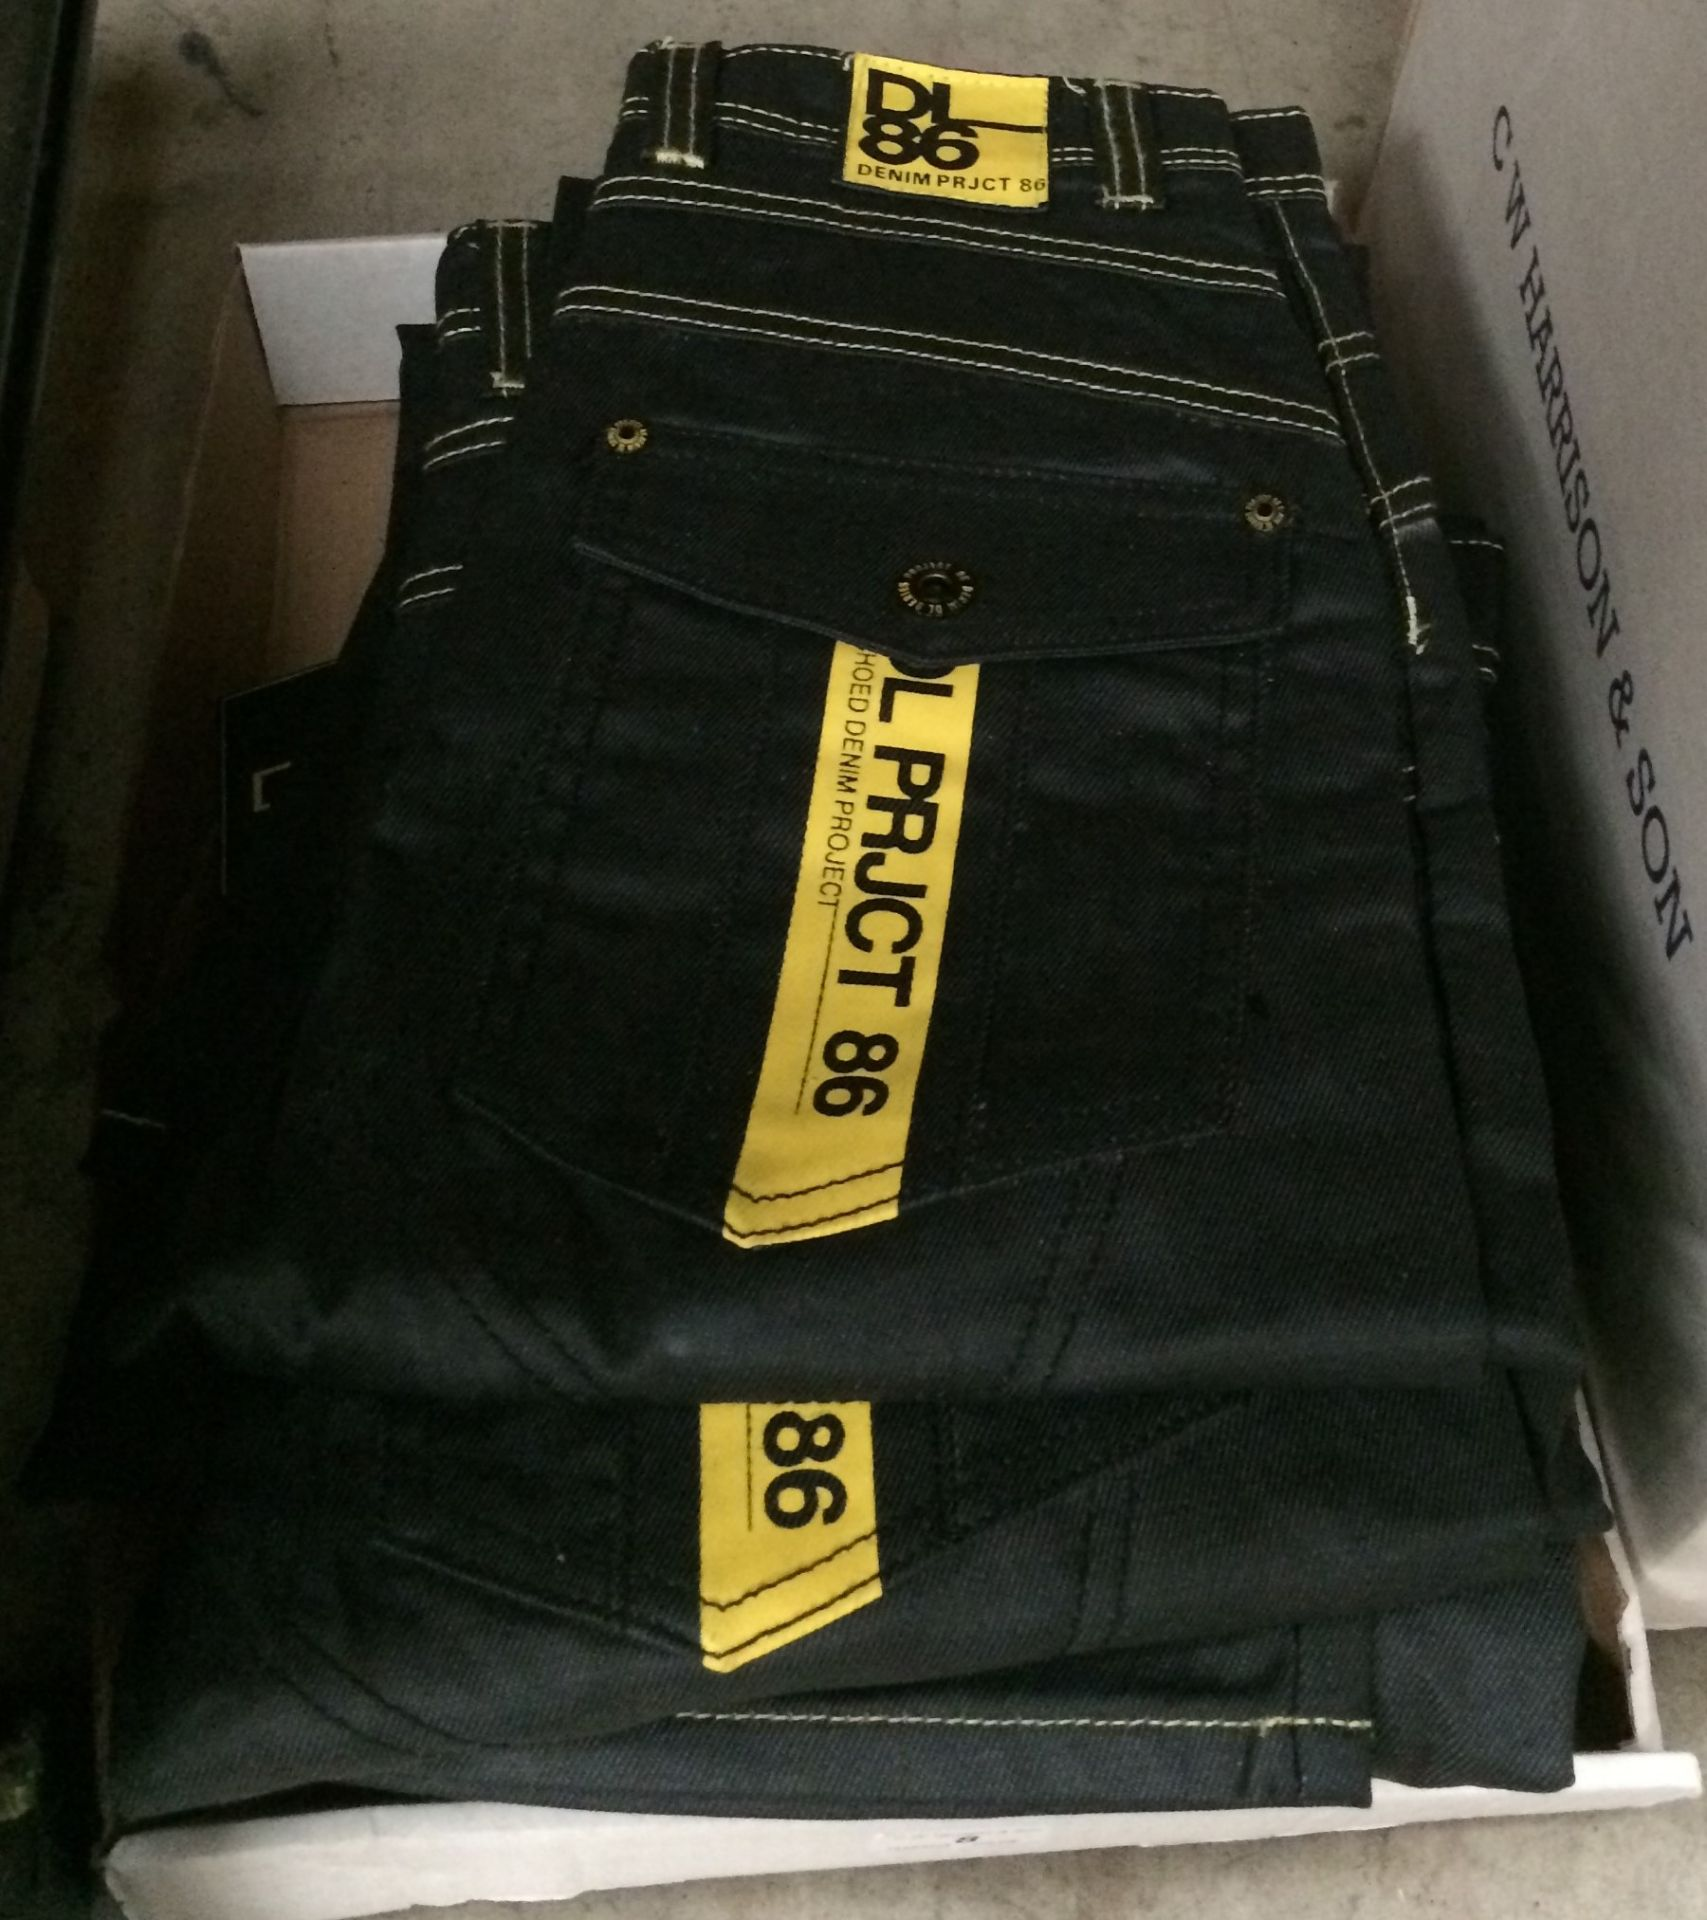 Lot 8 - 10 x pairs of black jeans by D L Project 86 - sizes Junior 24, 25, 26,